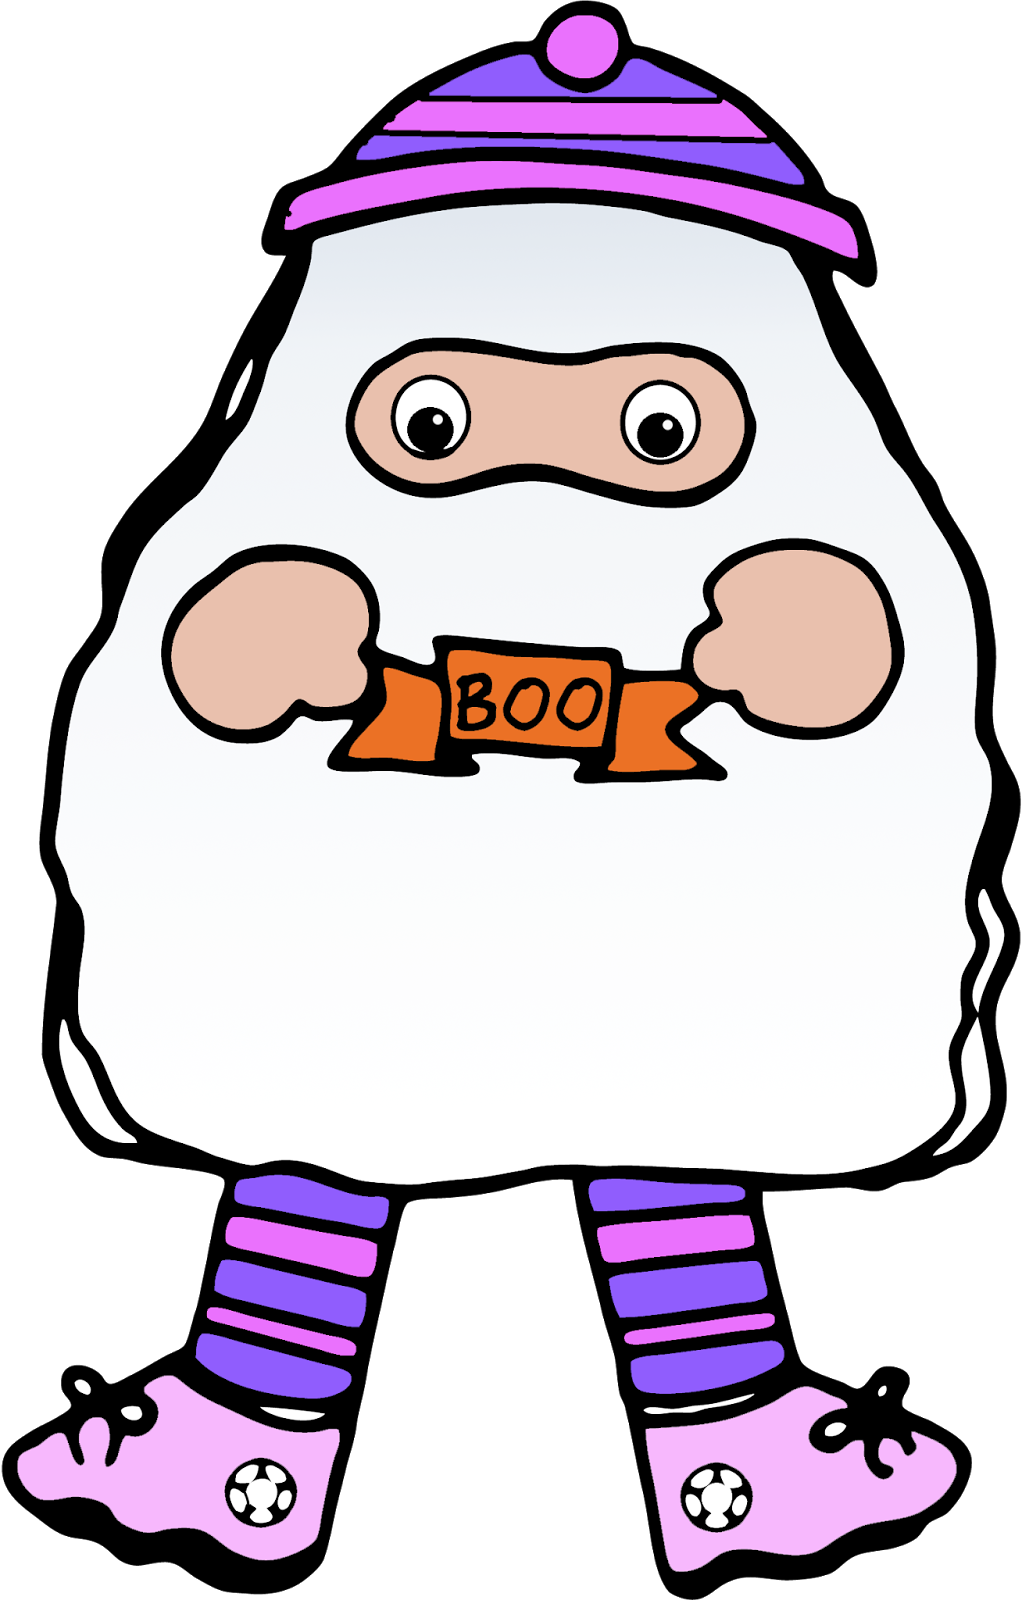 http://grannygoestoschool.blogspot.com/2014/10/ghostly-trick-o-rtreaters-free-clip-art.html